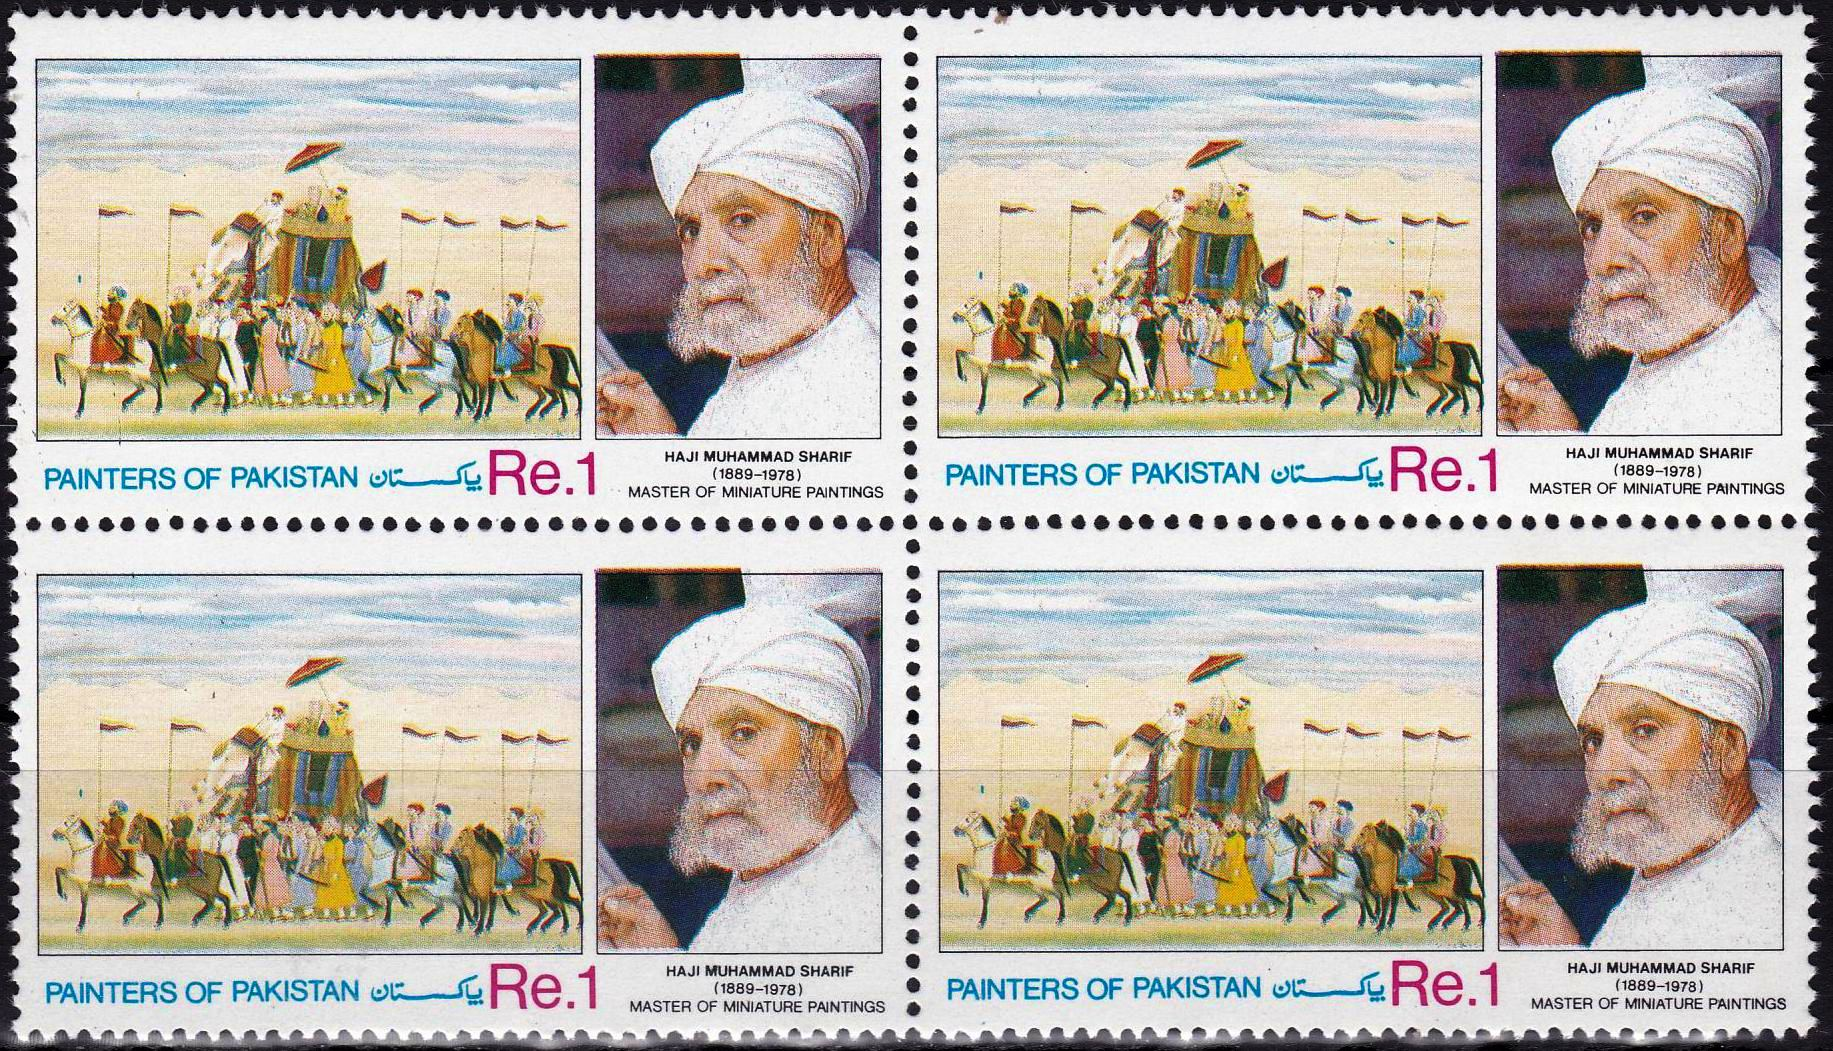 Pakistan Stamps 1991 Painters of Pakistan Haji Muhammad Sharif'